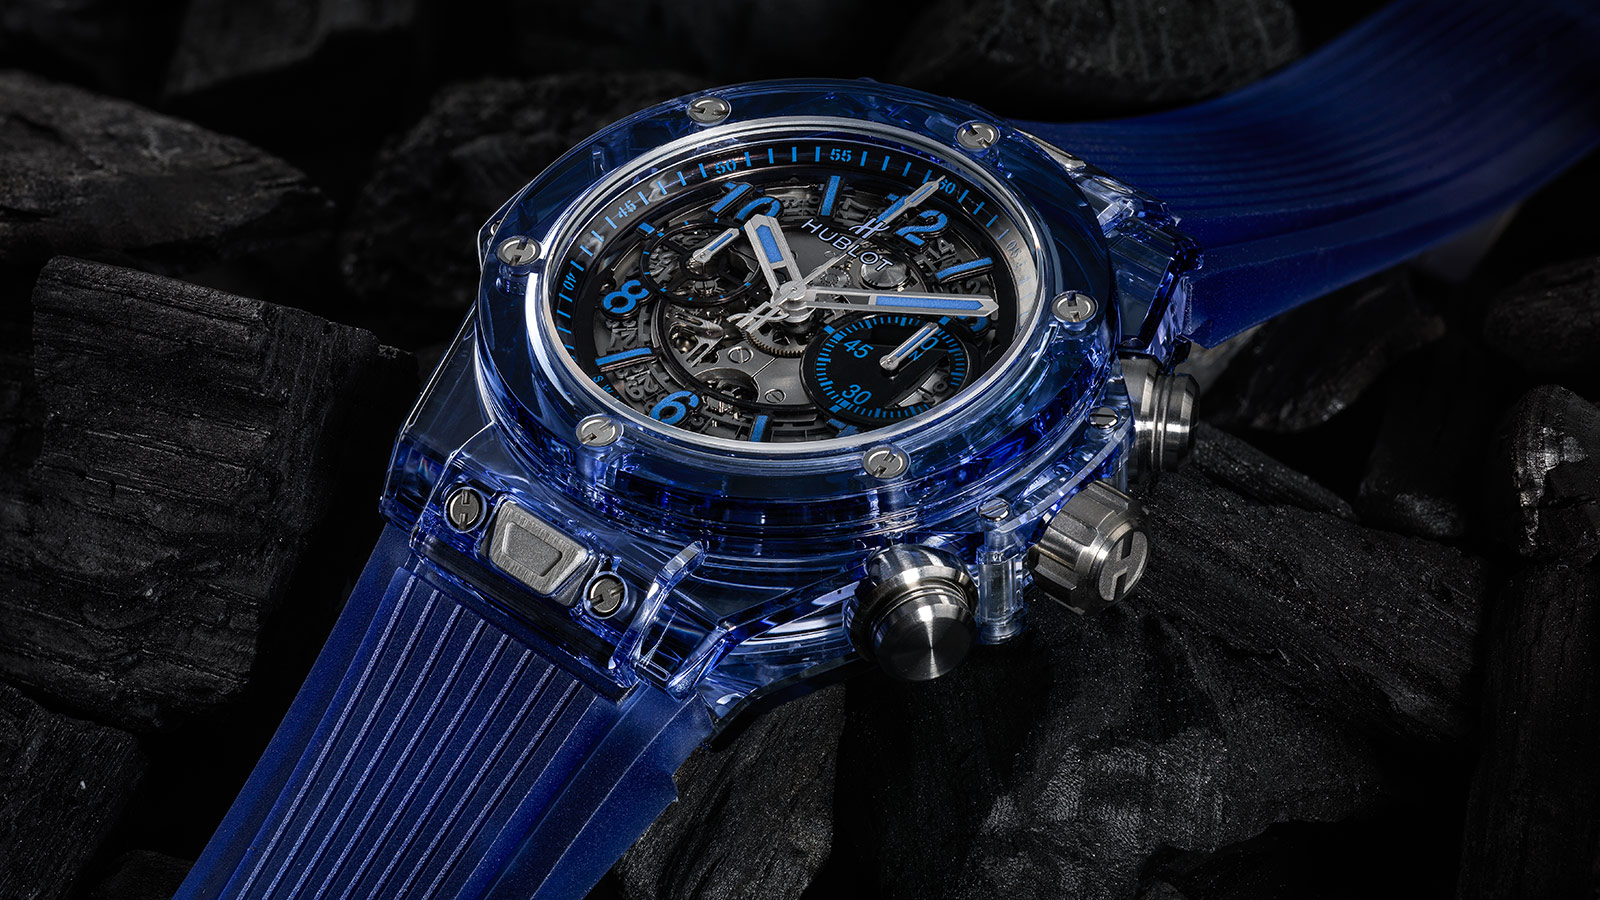 Take A Look At The Replica Hublot Celebrates A New World's First